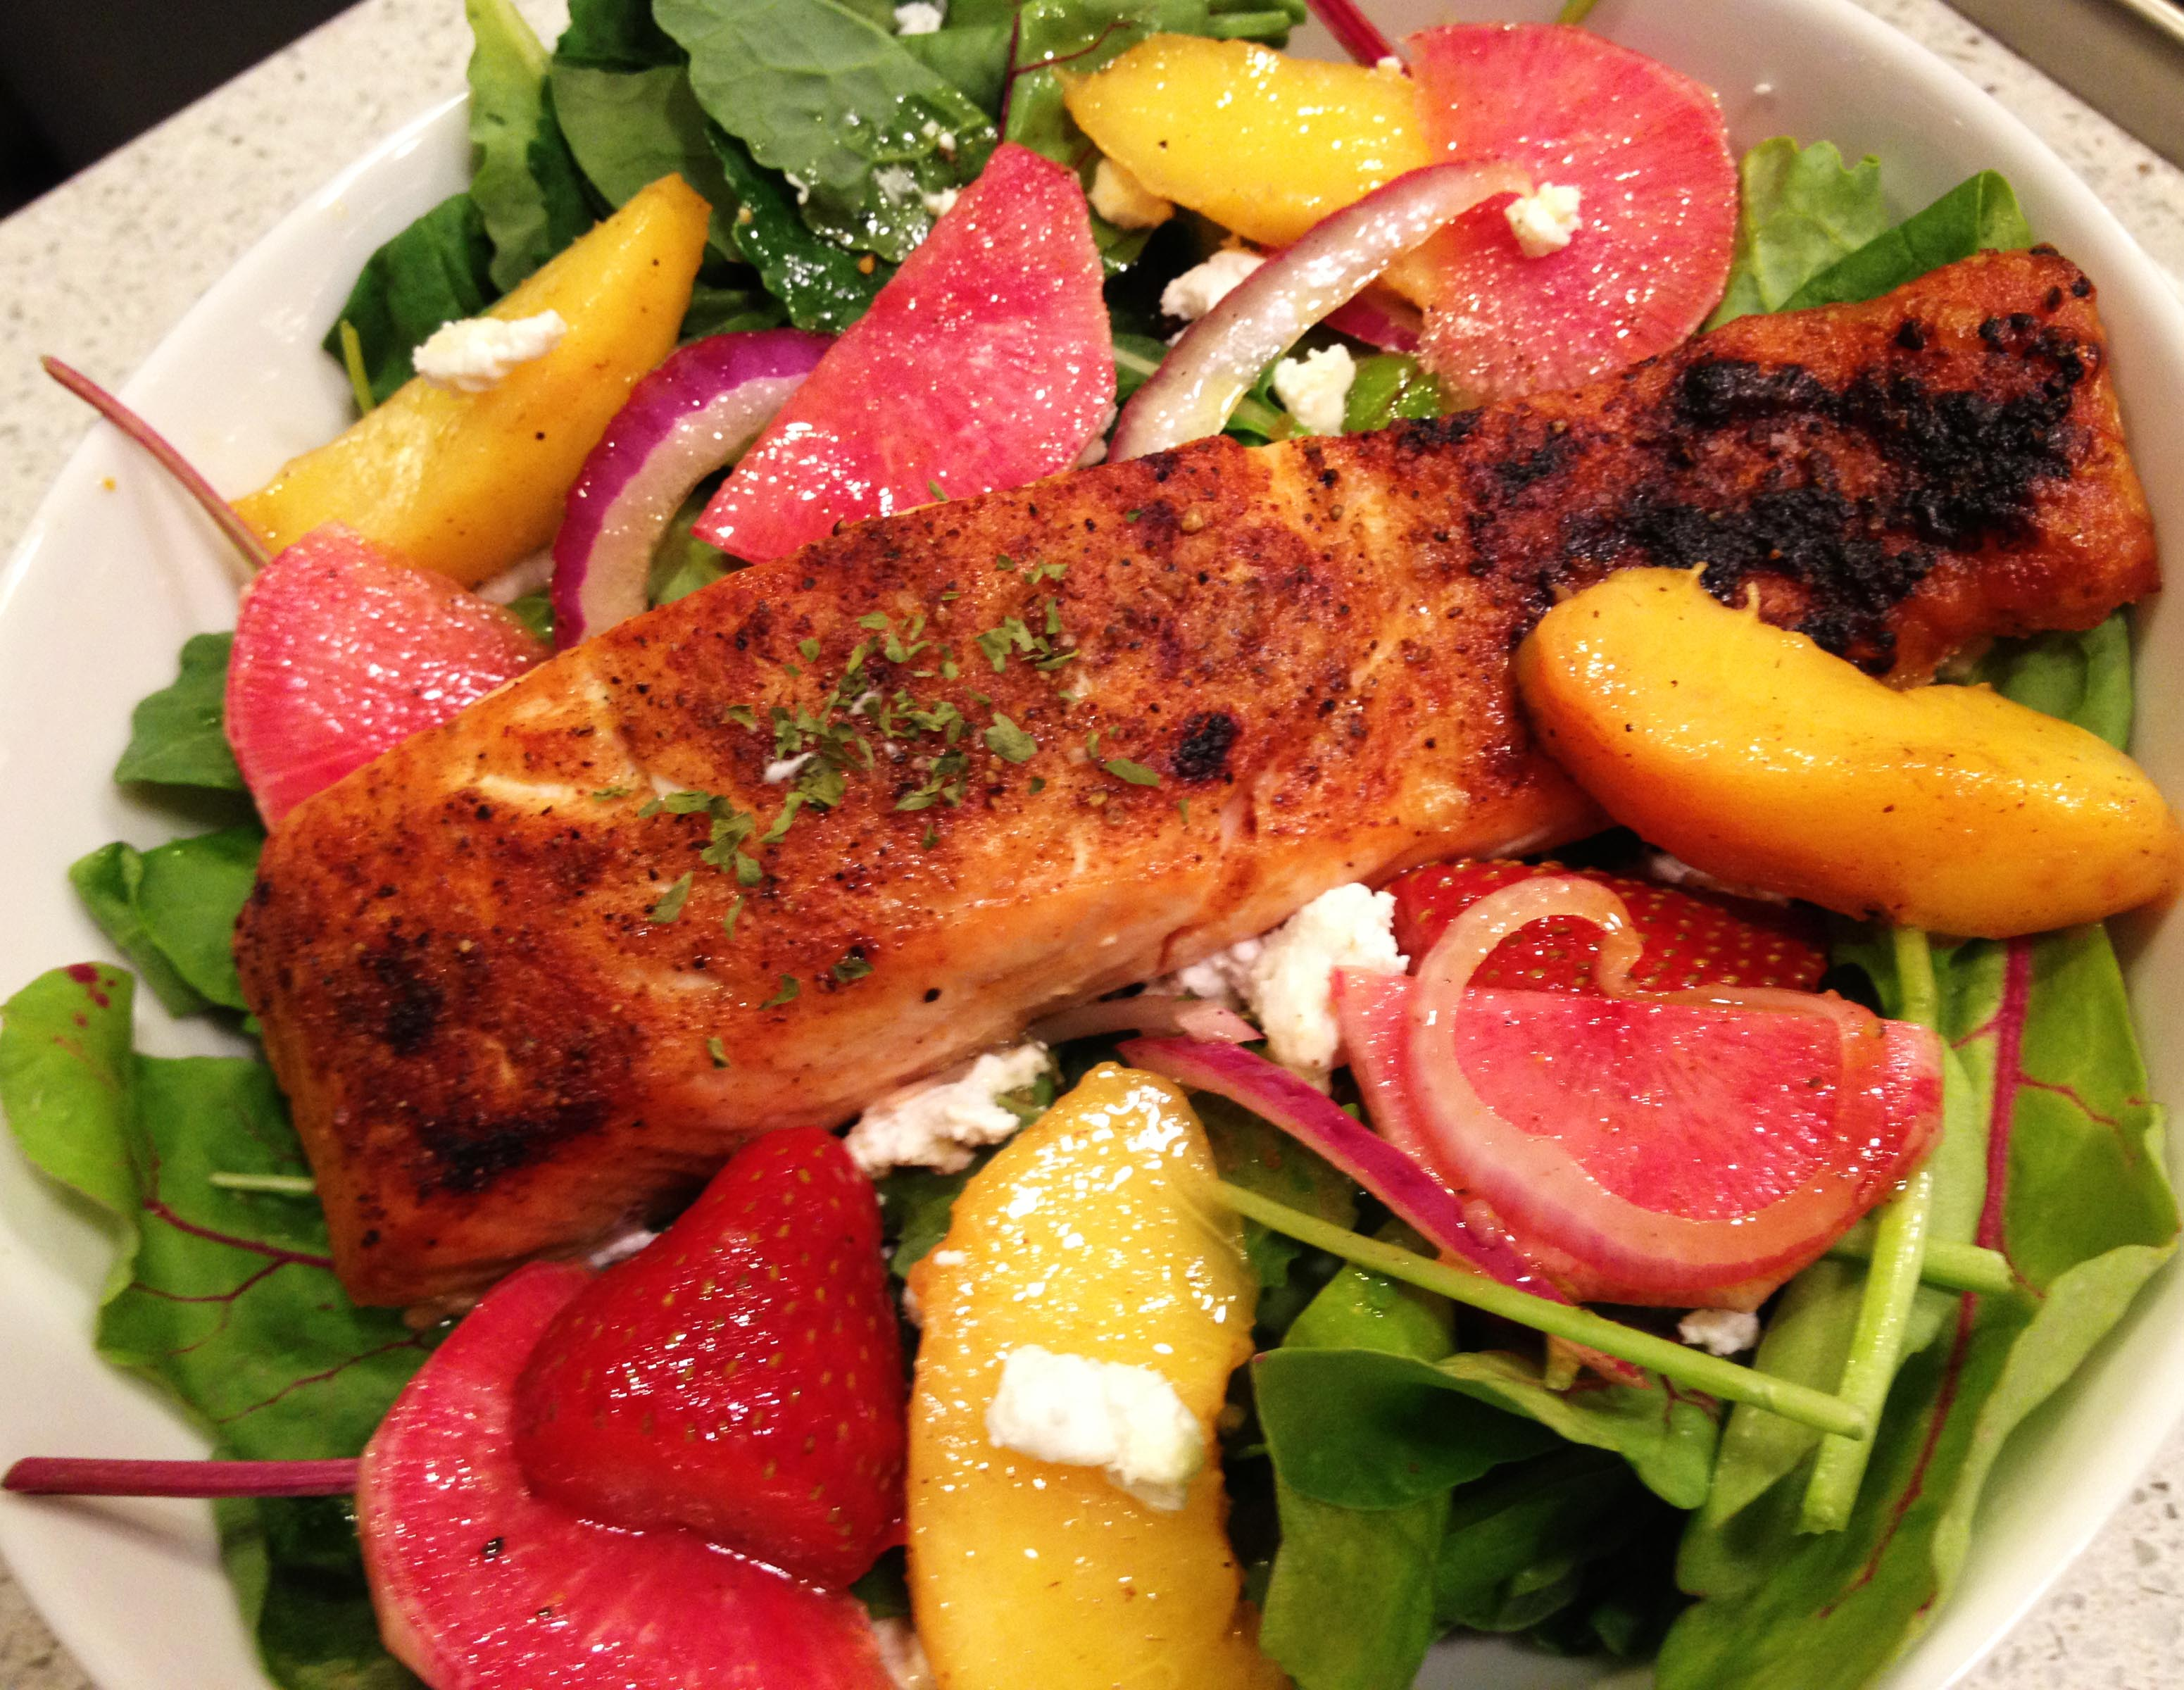 [RECIPE] Summer Greens with Grilled Salmon, Watermelon Radish, Peaches and Strawberries